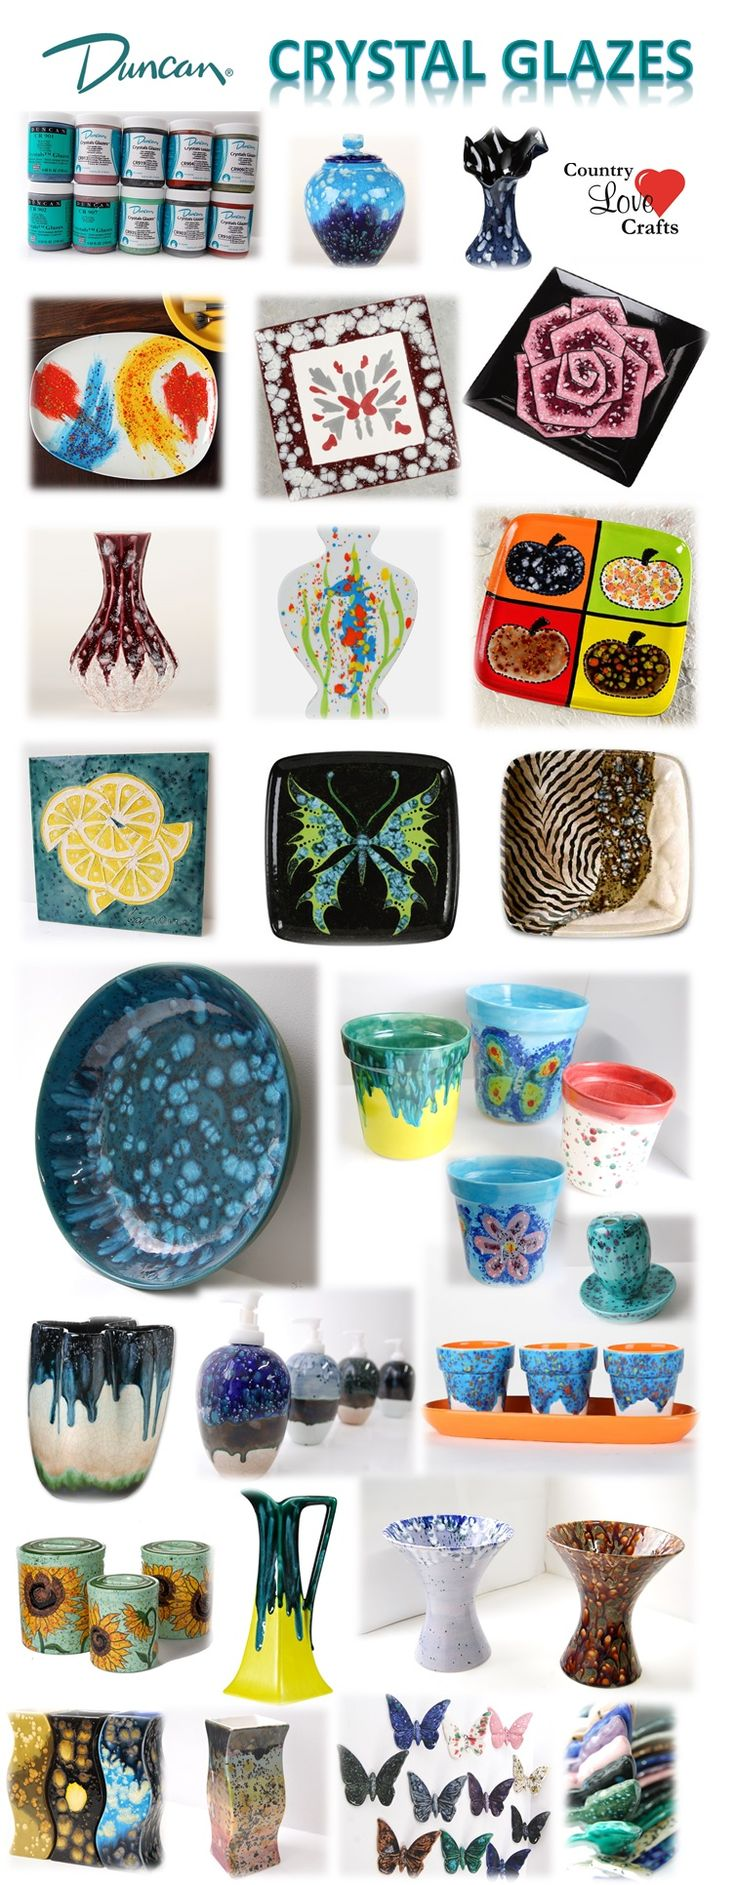 1000 images about crystal glazes on pinterest ceramic for Bisque ceramic craft stores